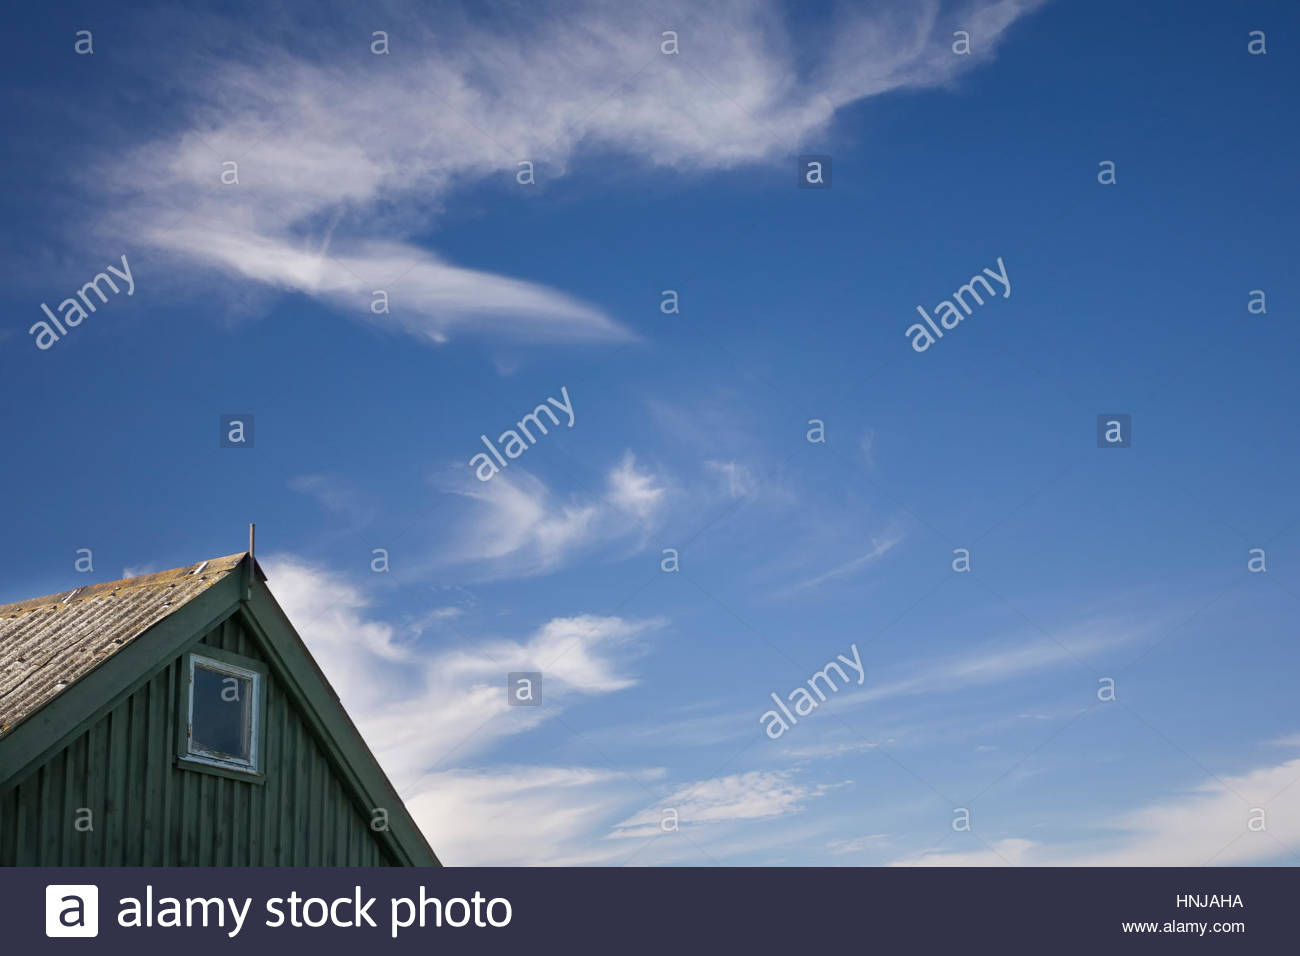 Clouds swirl above a typical swedish barn - Stock Image